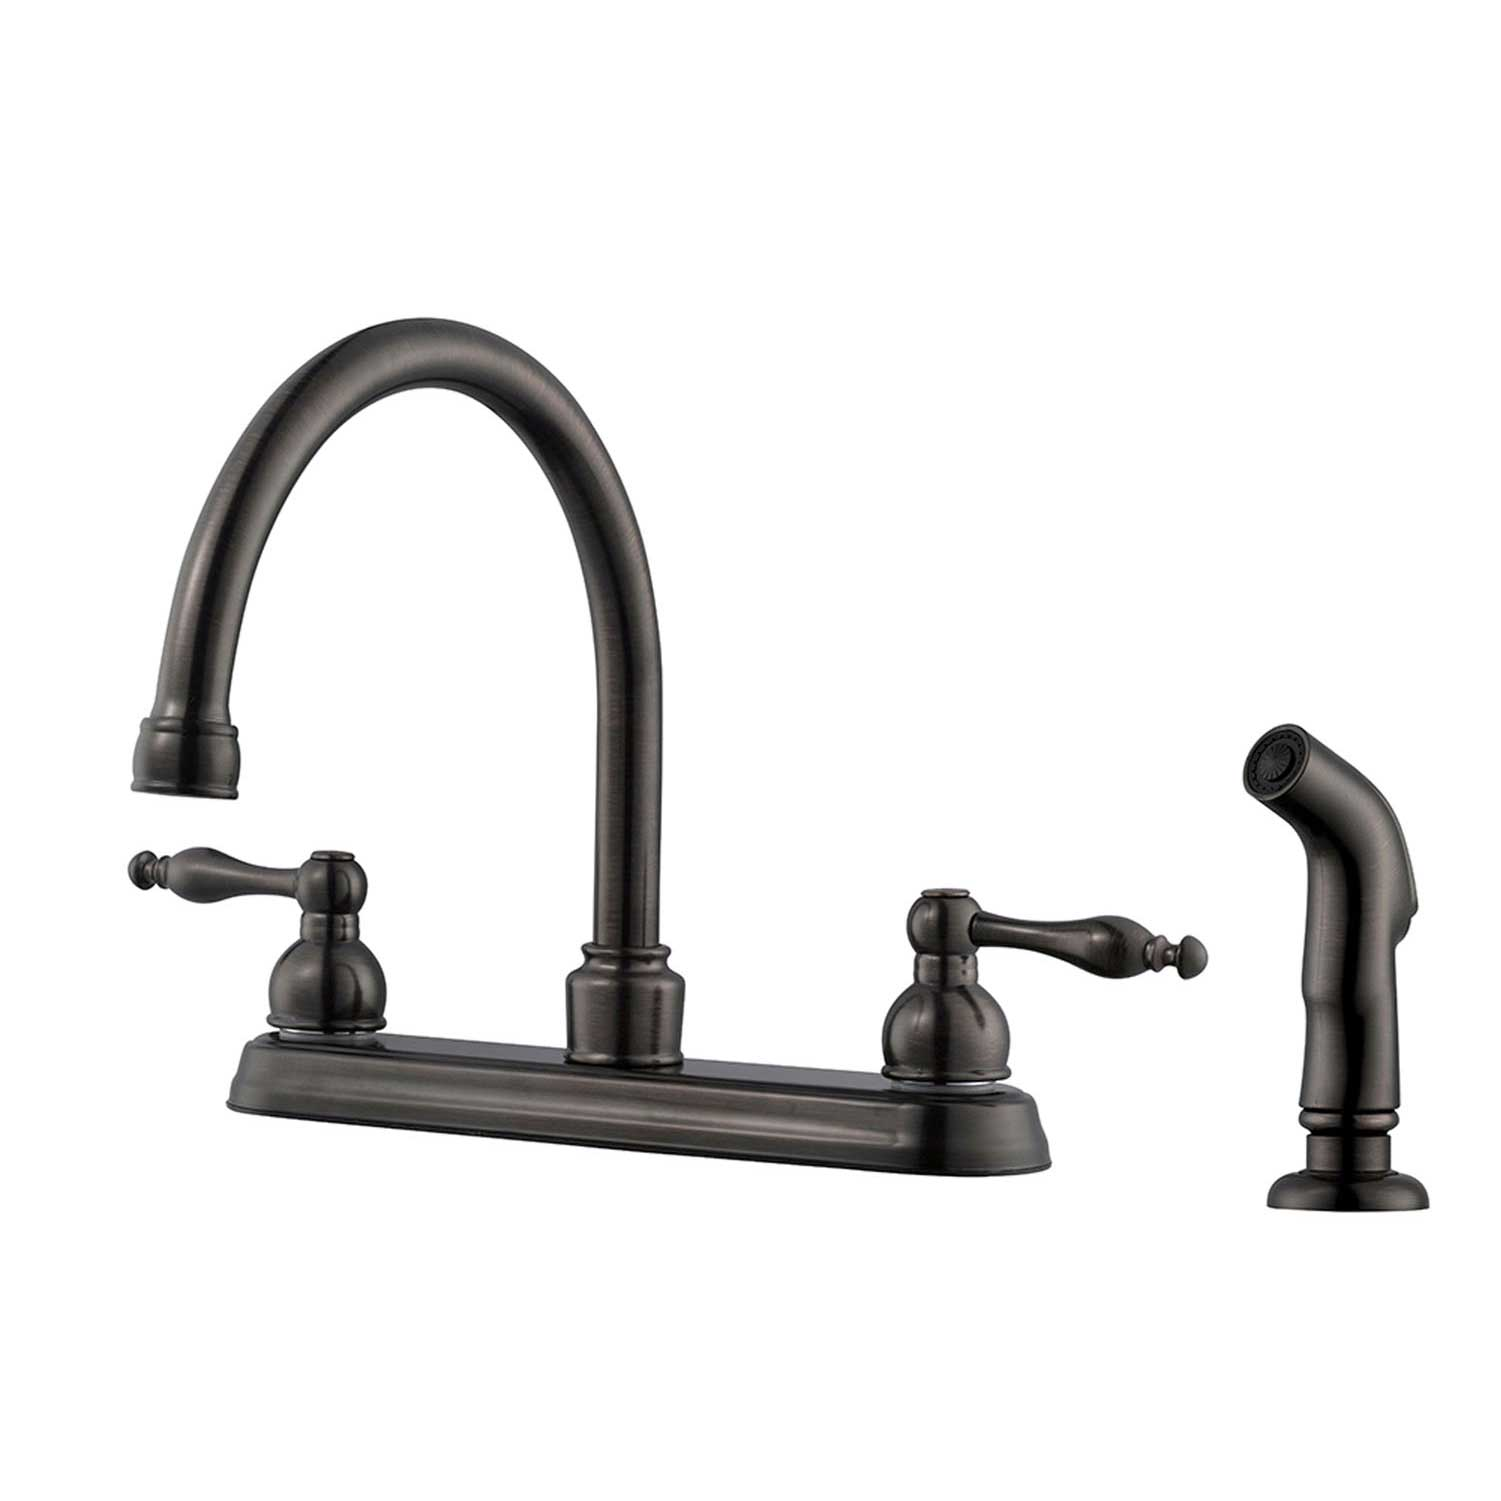 Design House Saratoga Kitchen Faucet with Side Sprayer, Brushed Bronze - 546127